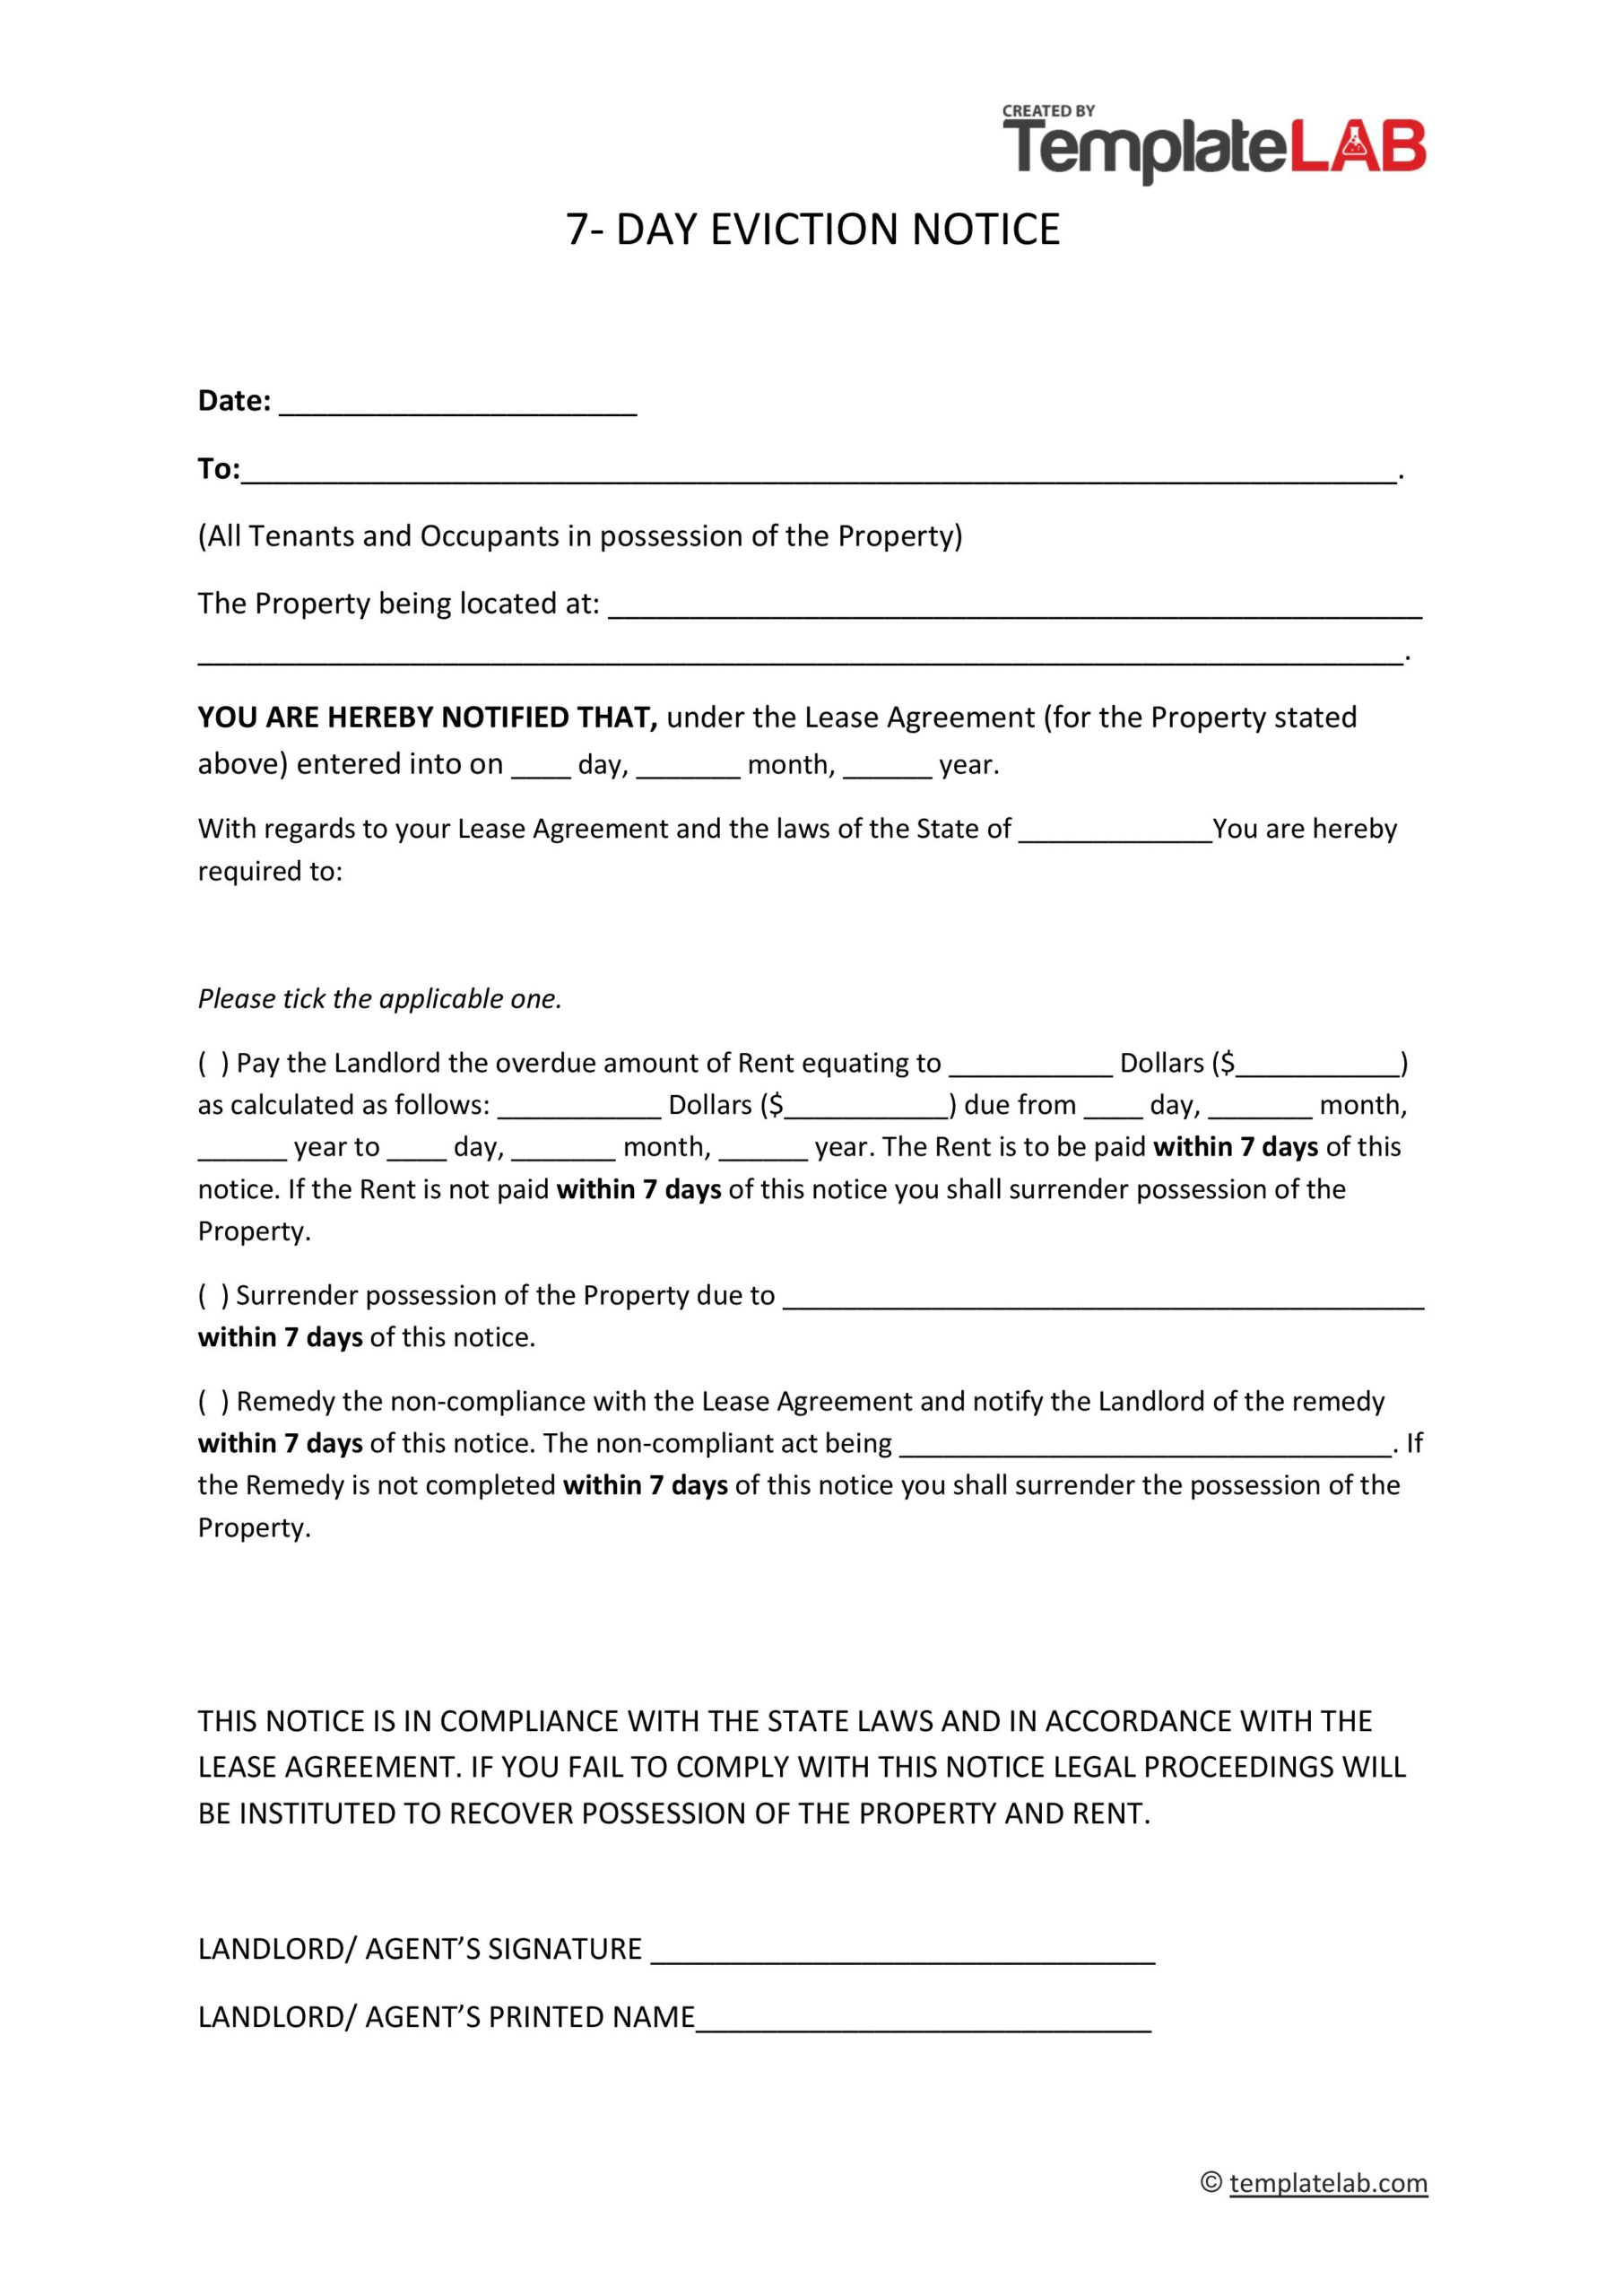 Free 7 Days Eviction Notice Template